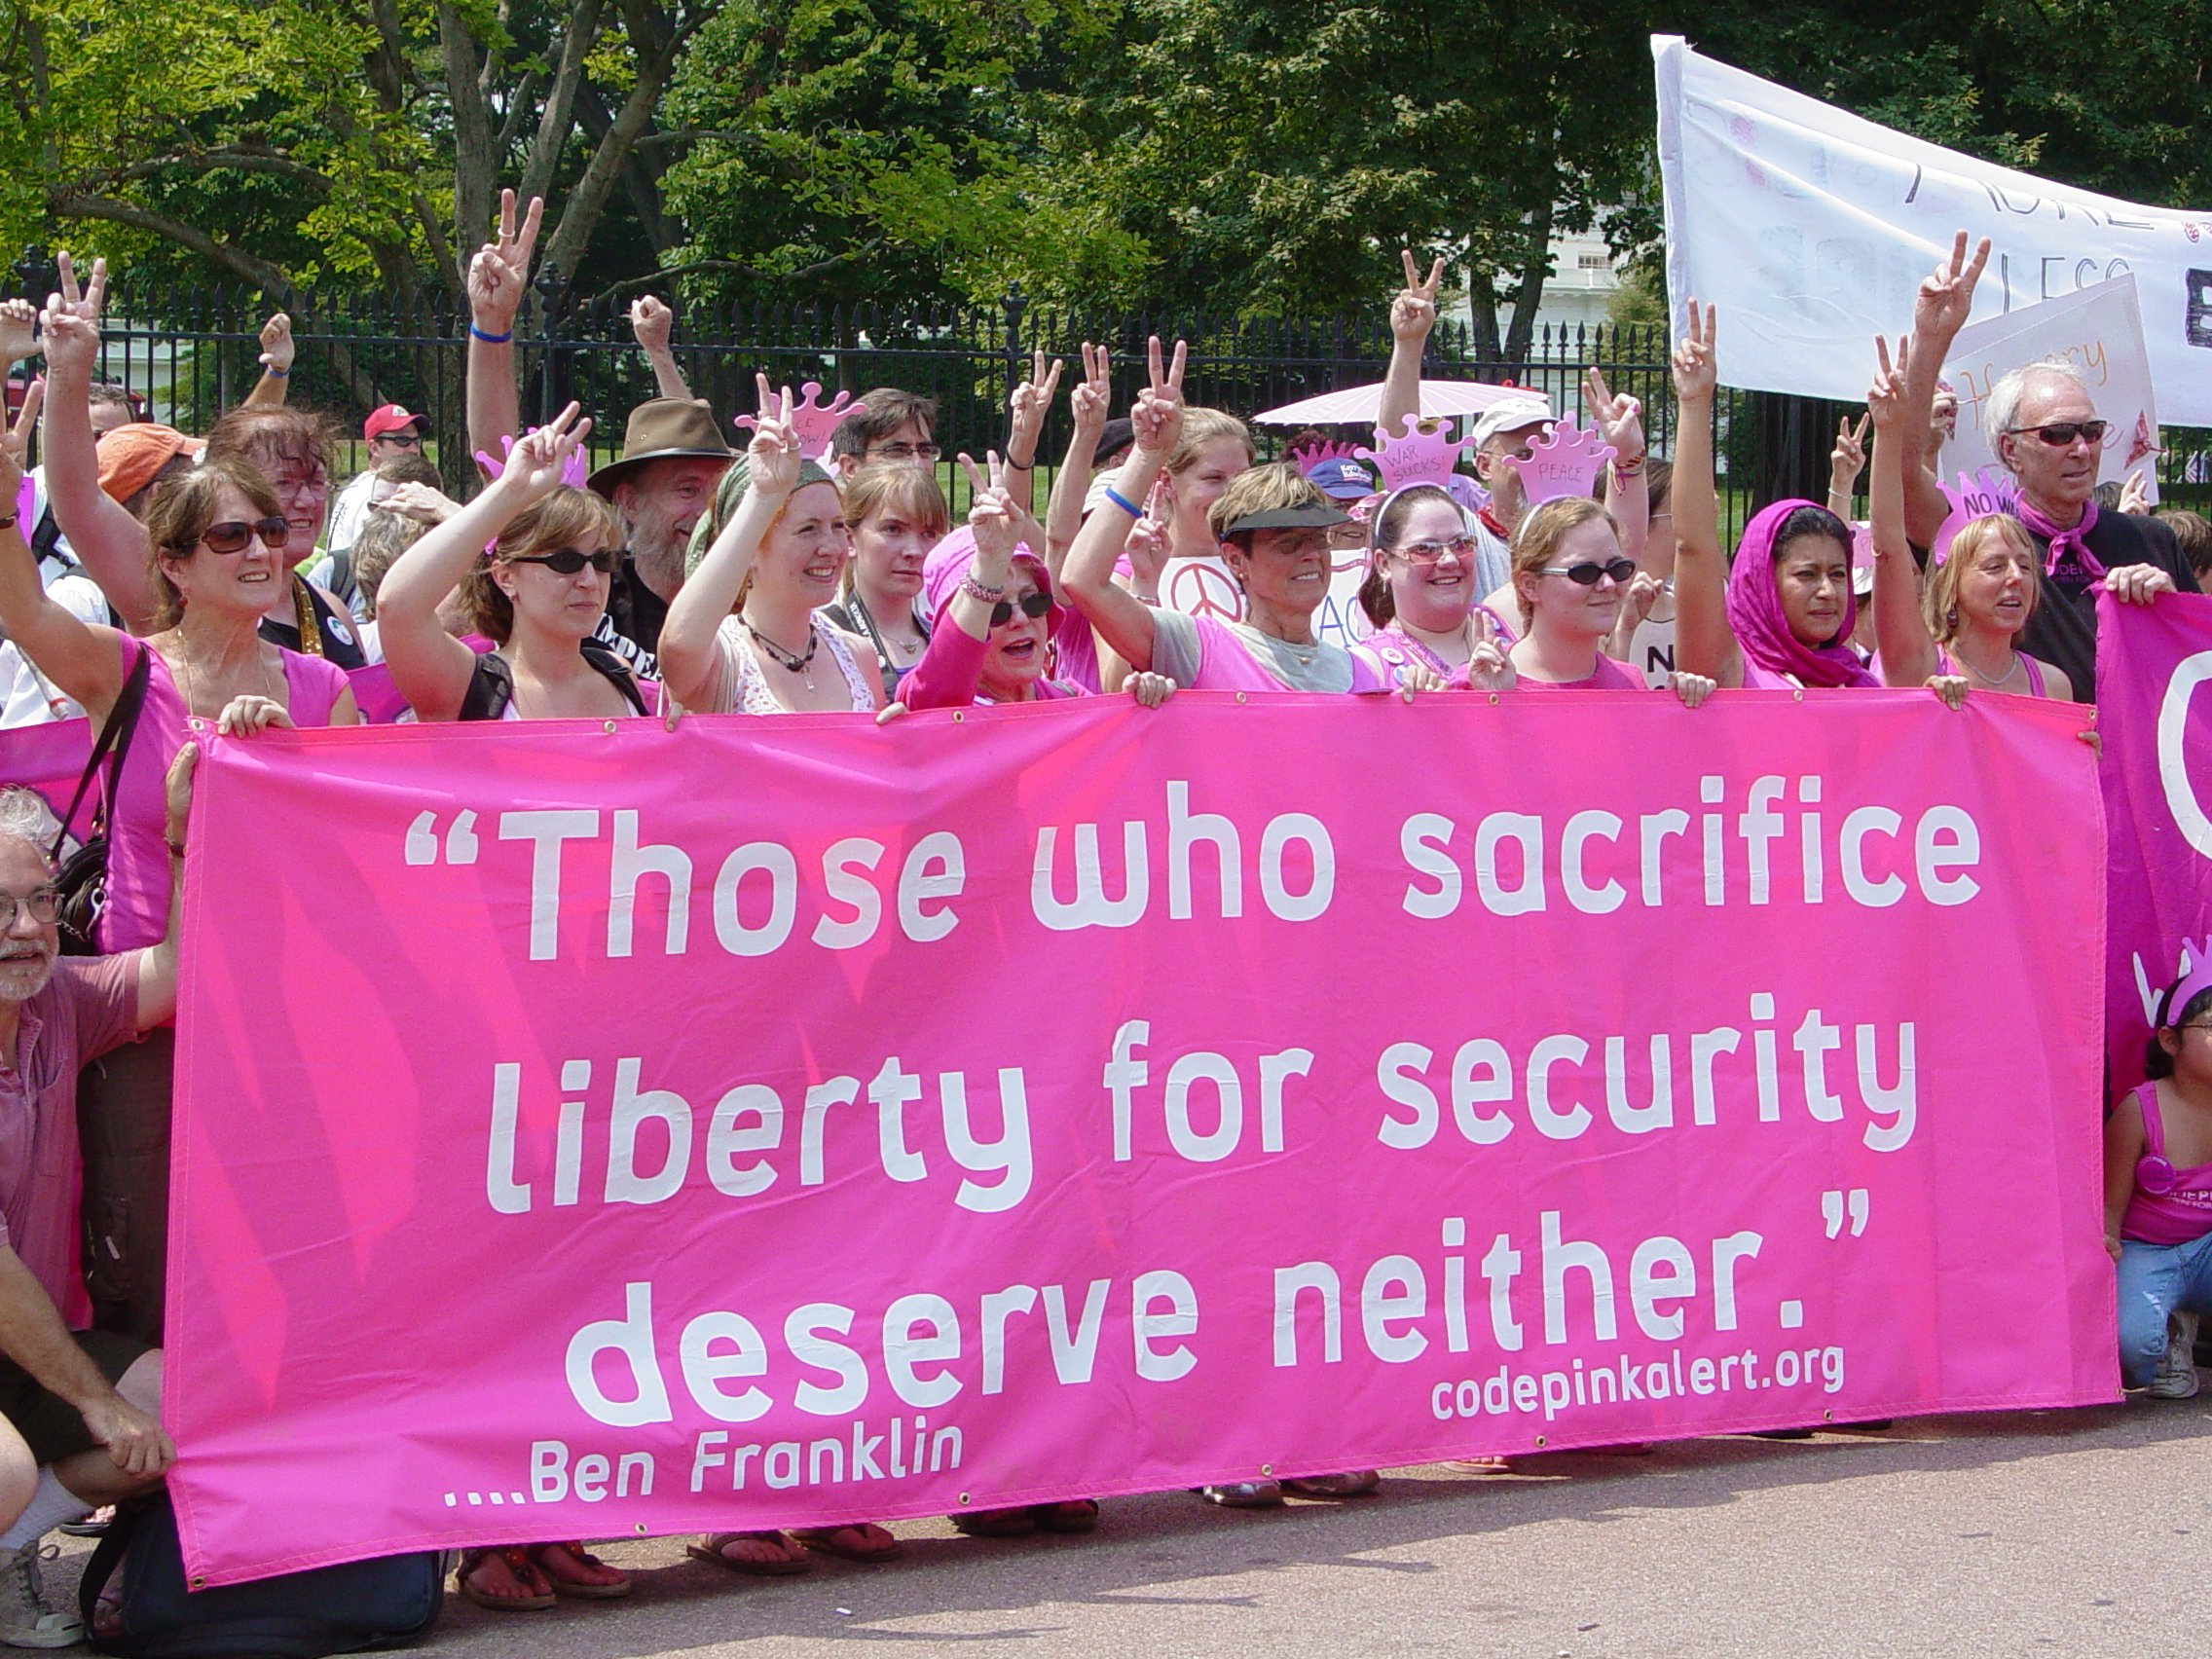 Code_Pink_July_4